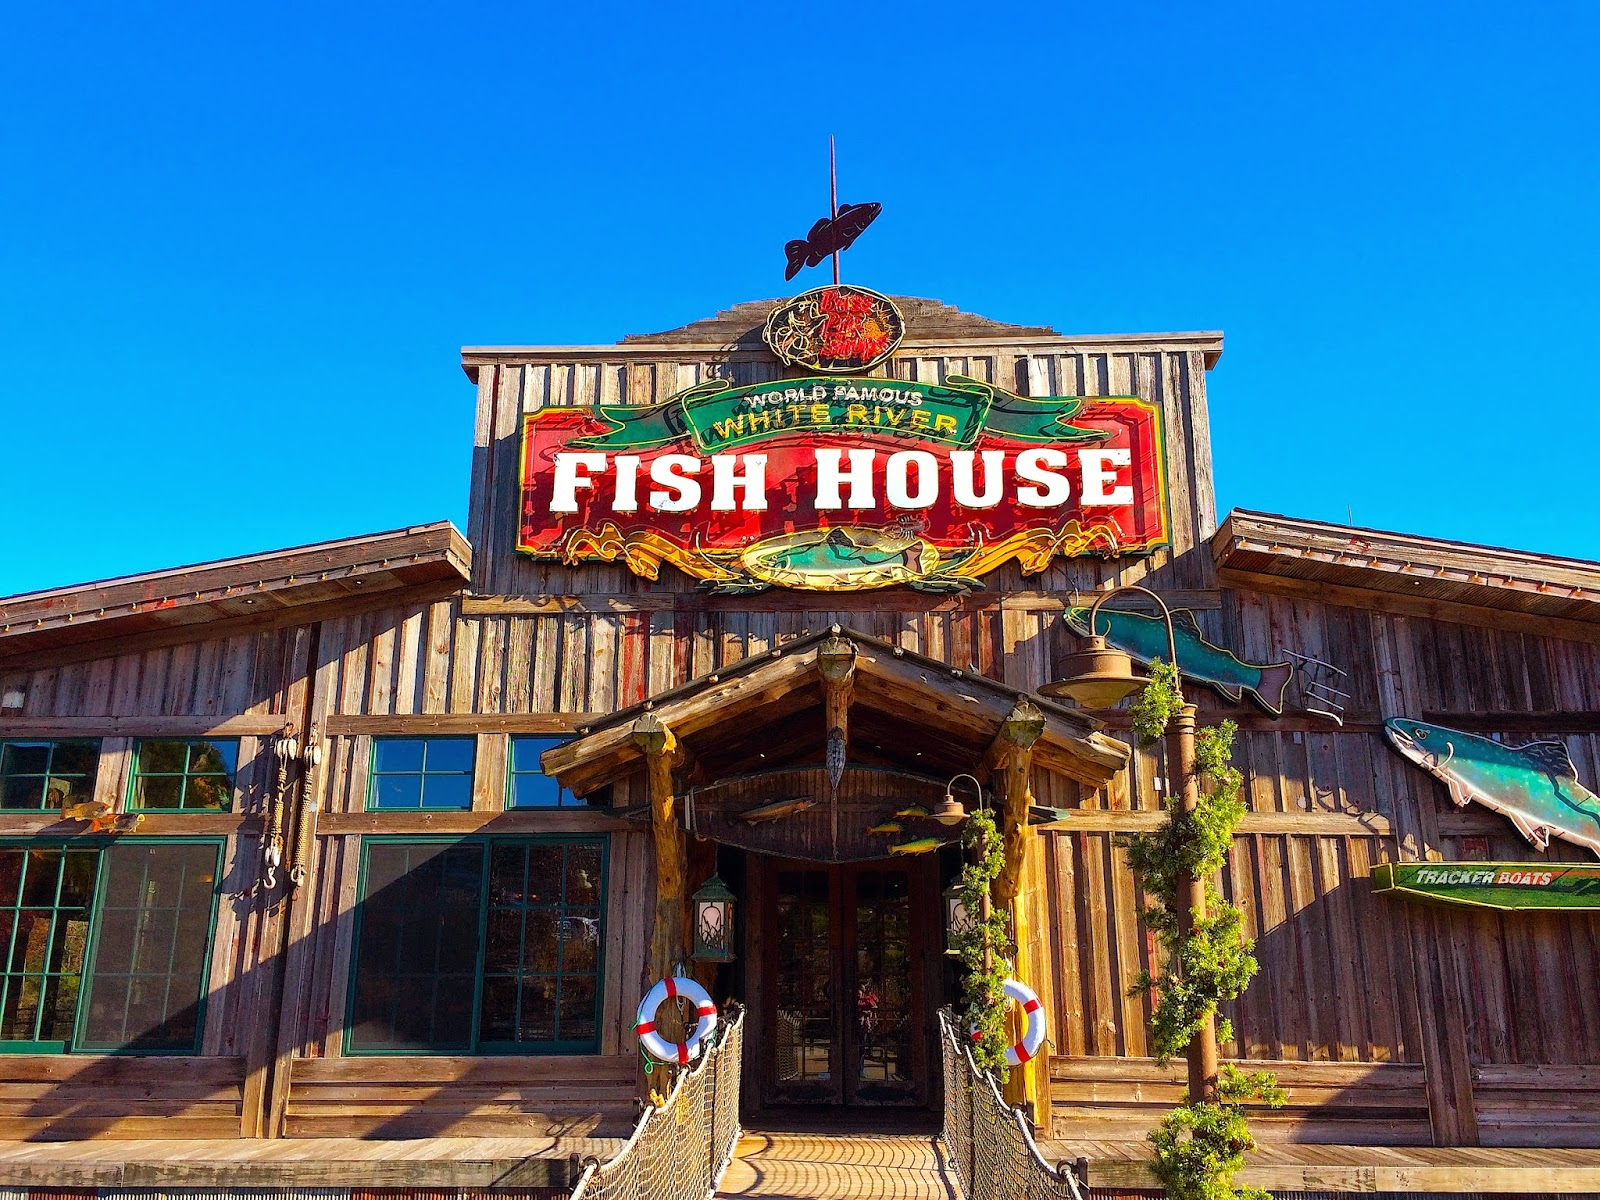 Livin the good life white river fish house for Lodge fish house